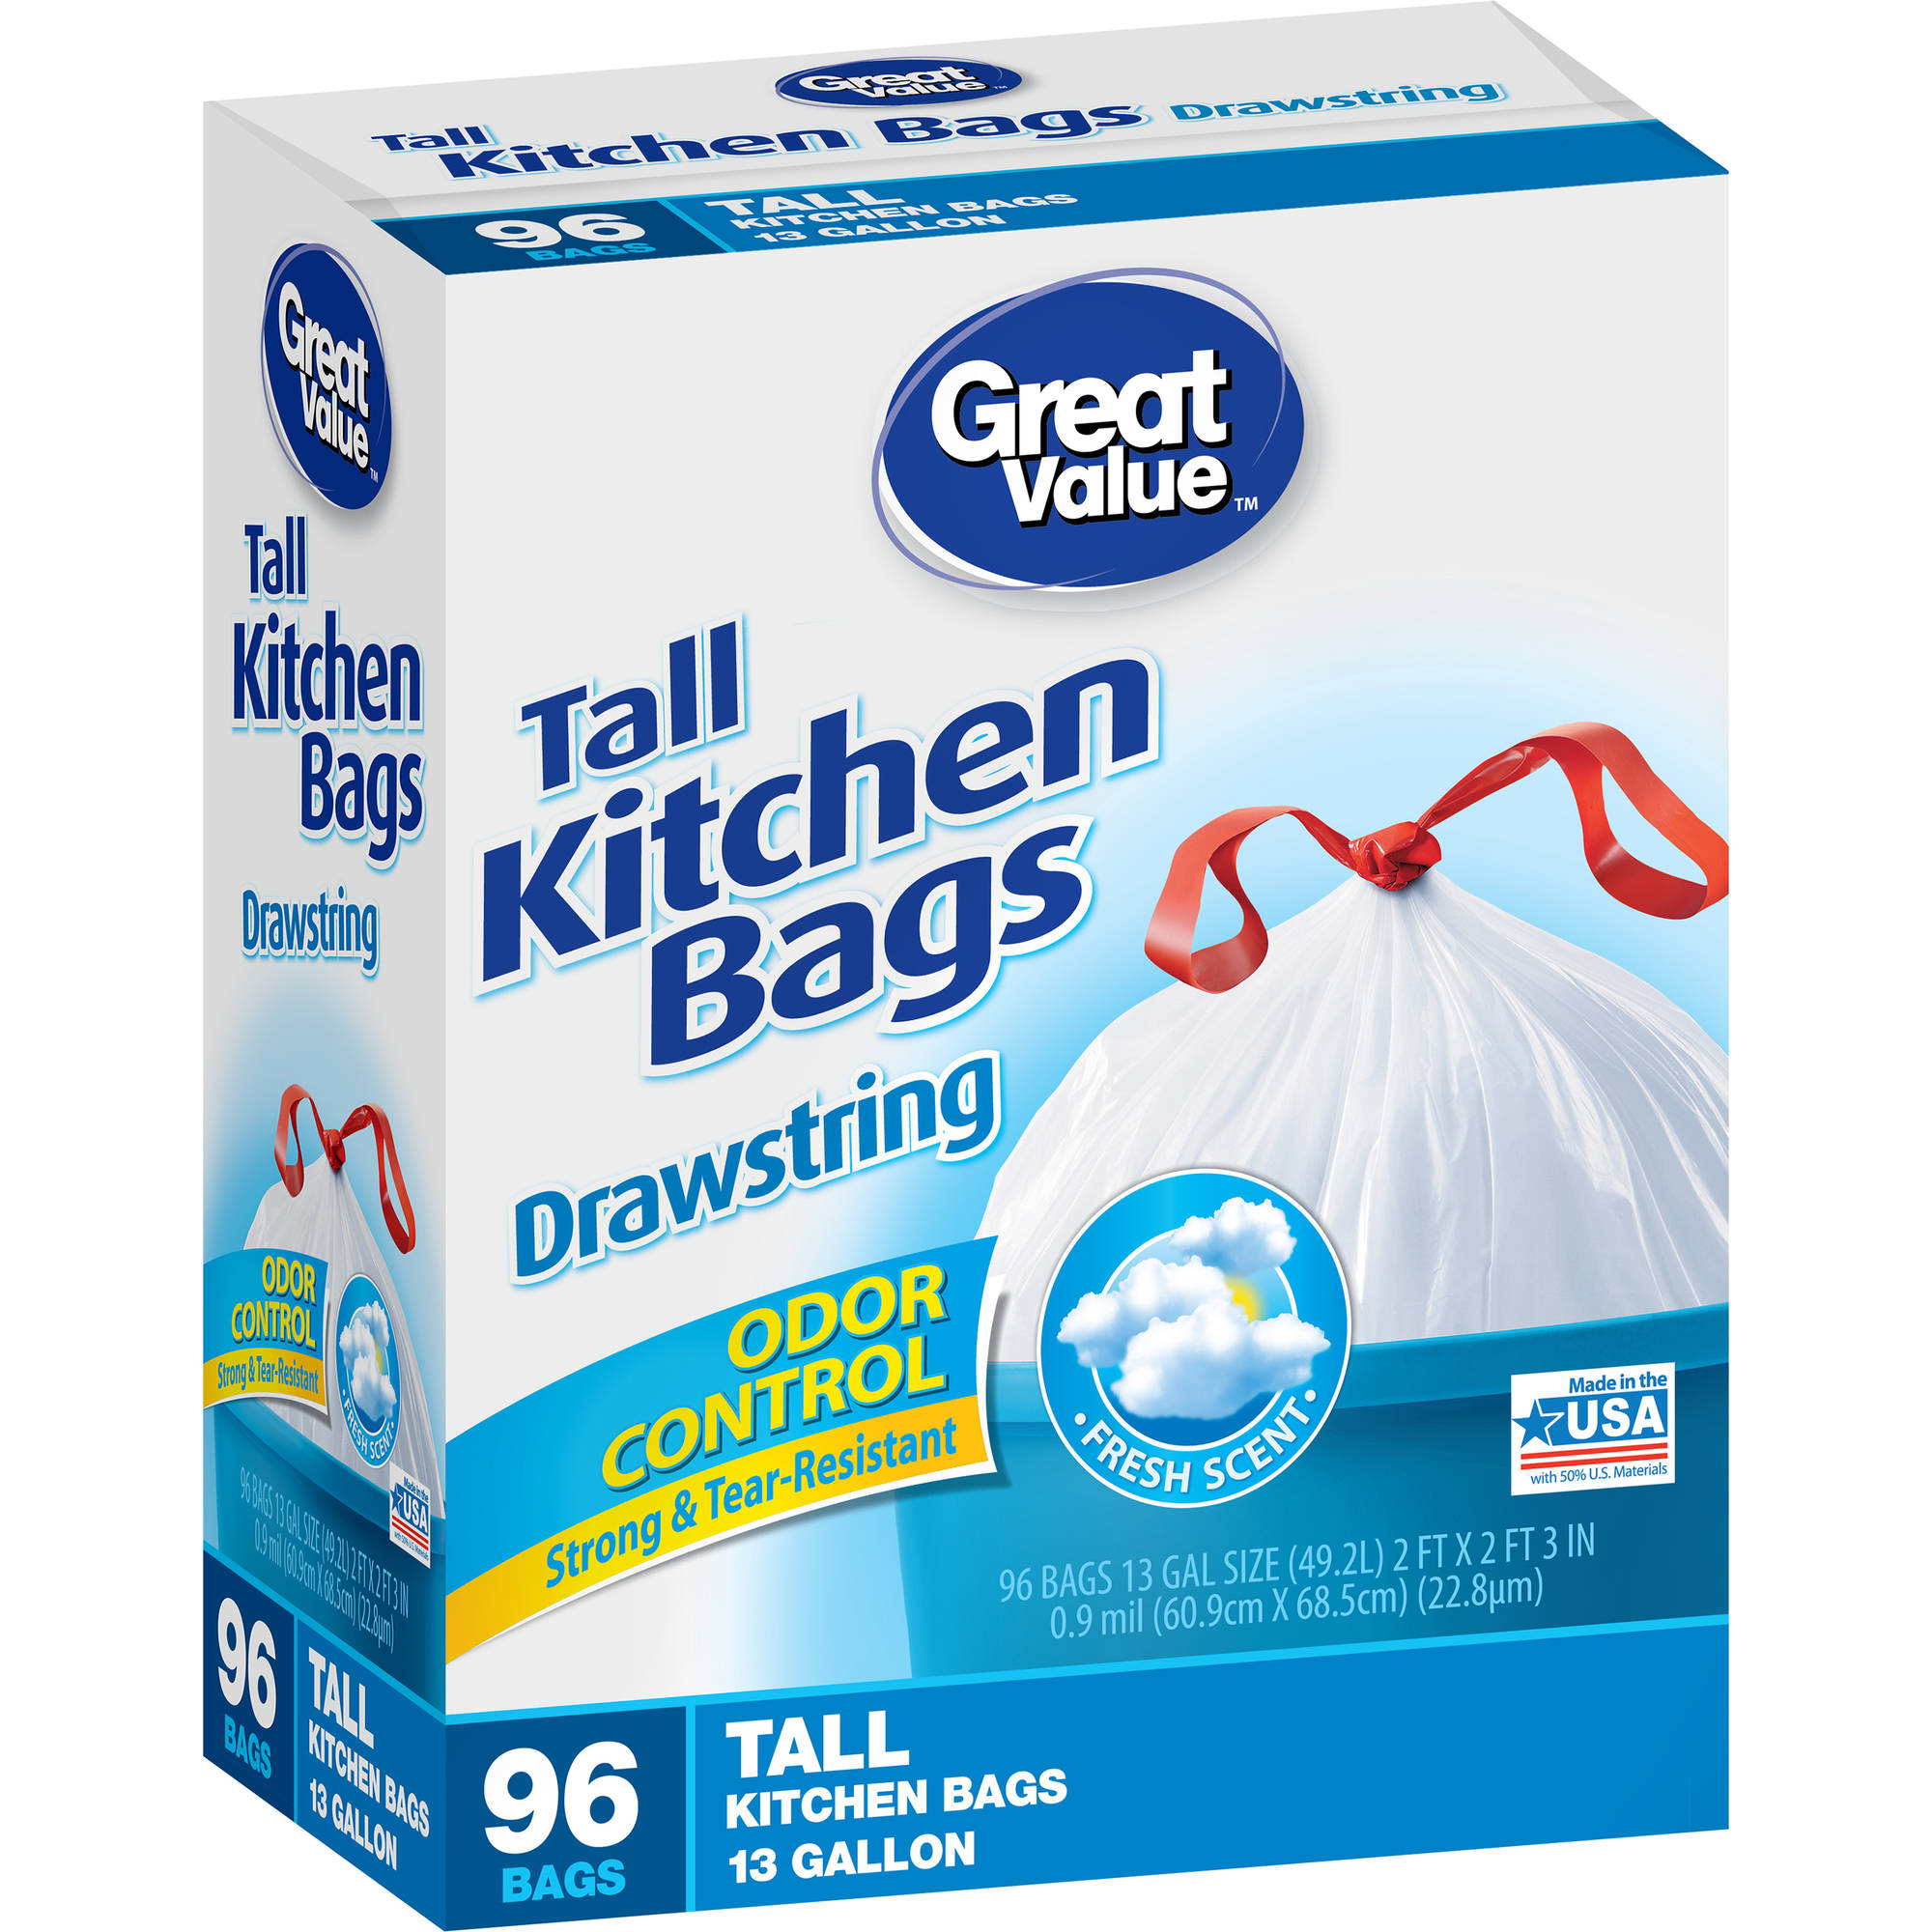 Great Value Drawstring Odor Control Fresh Scent Tall Kitchen Trash Bags, 13 gal, 96 count